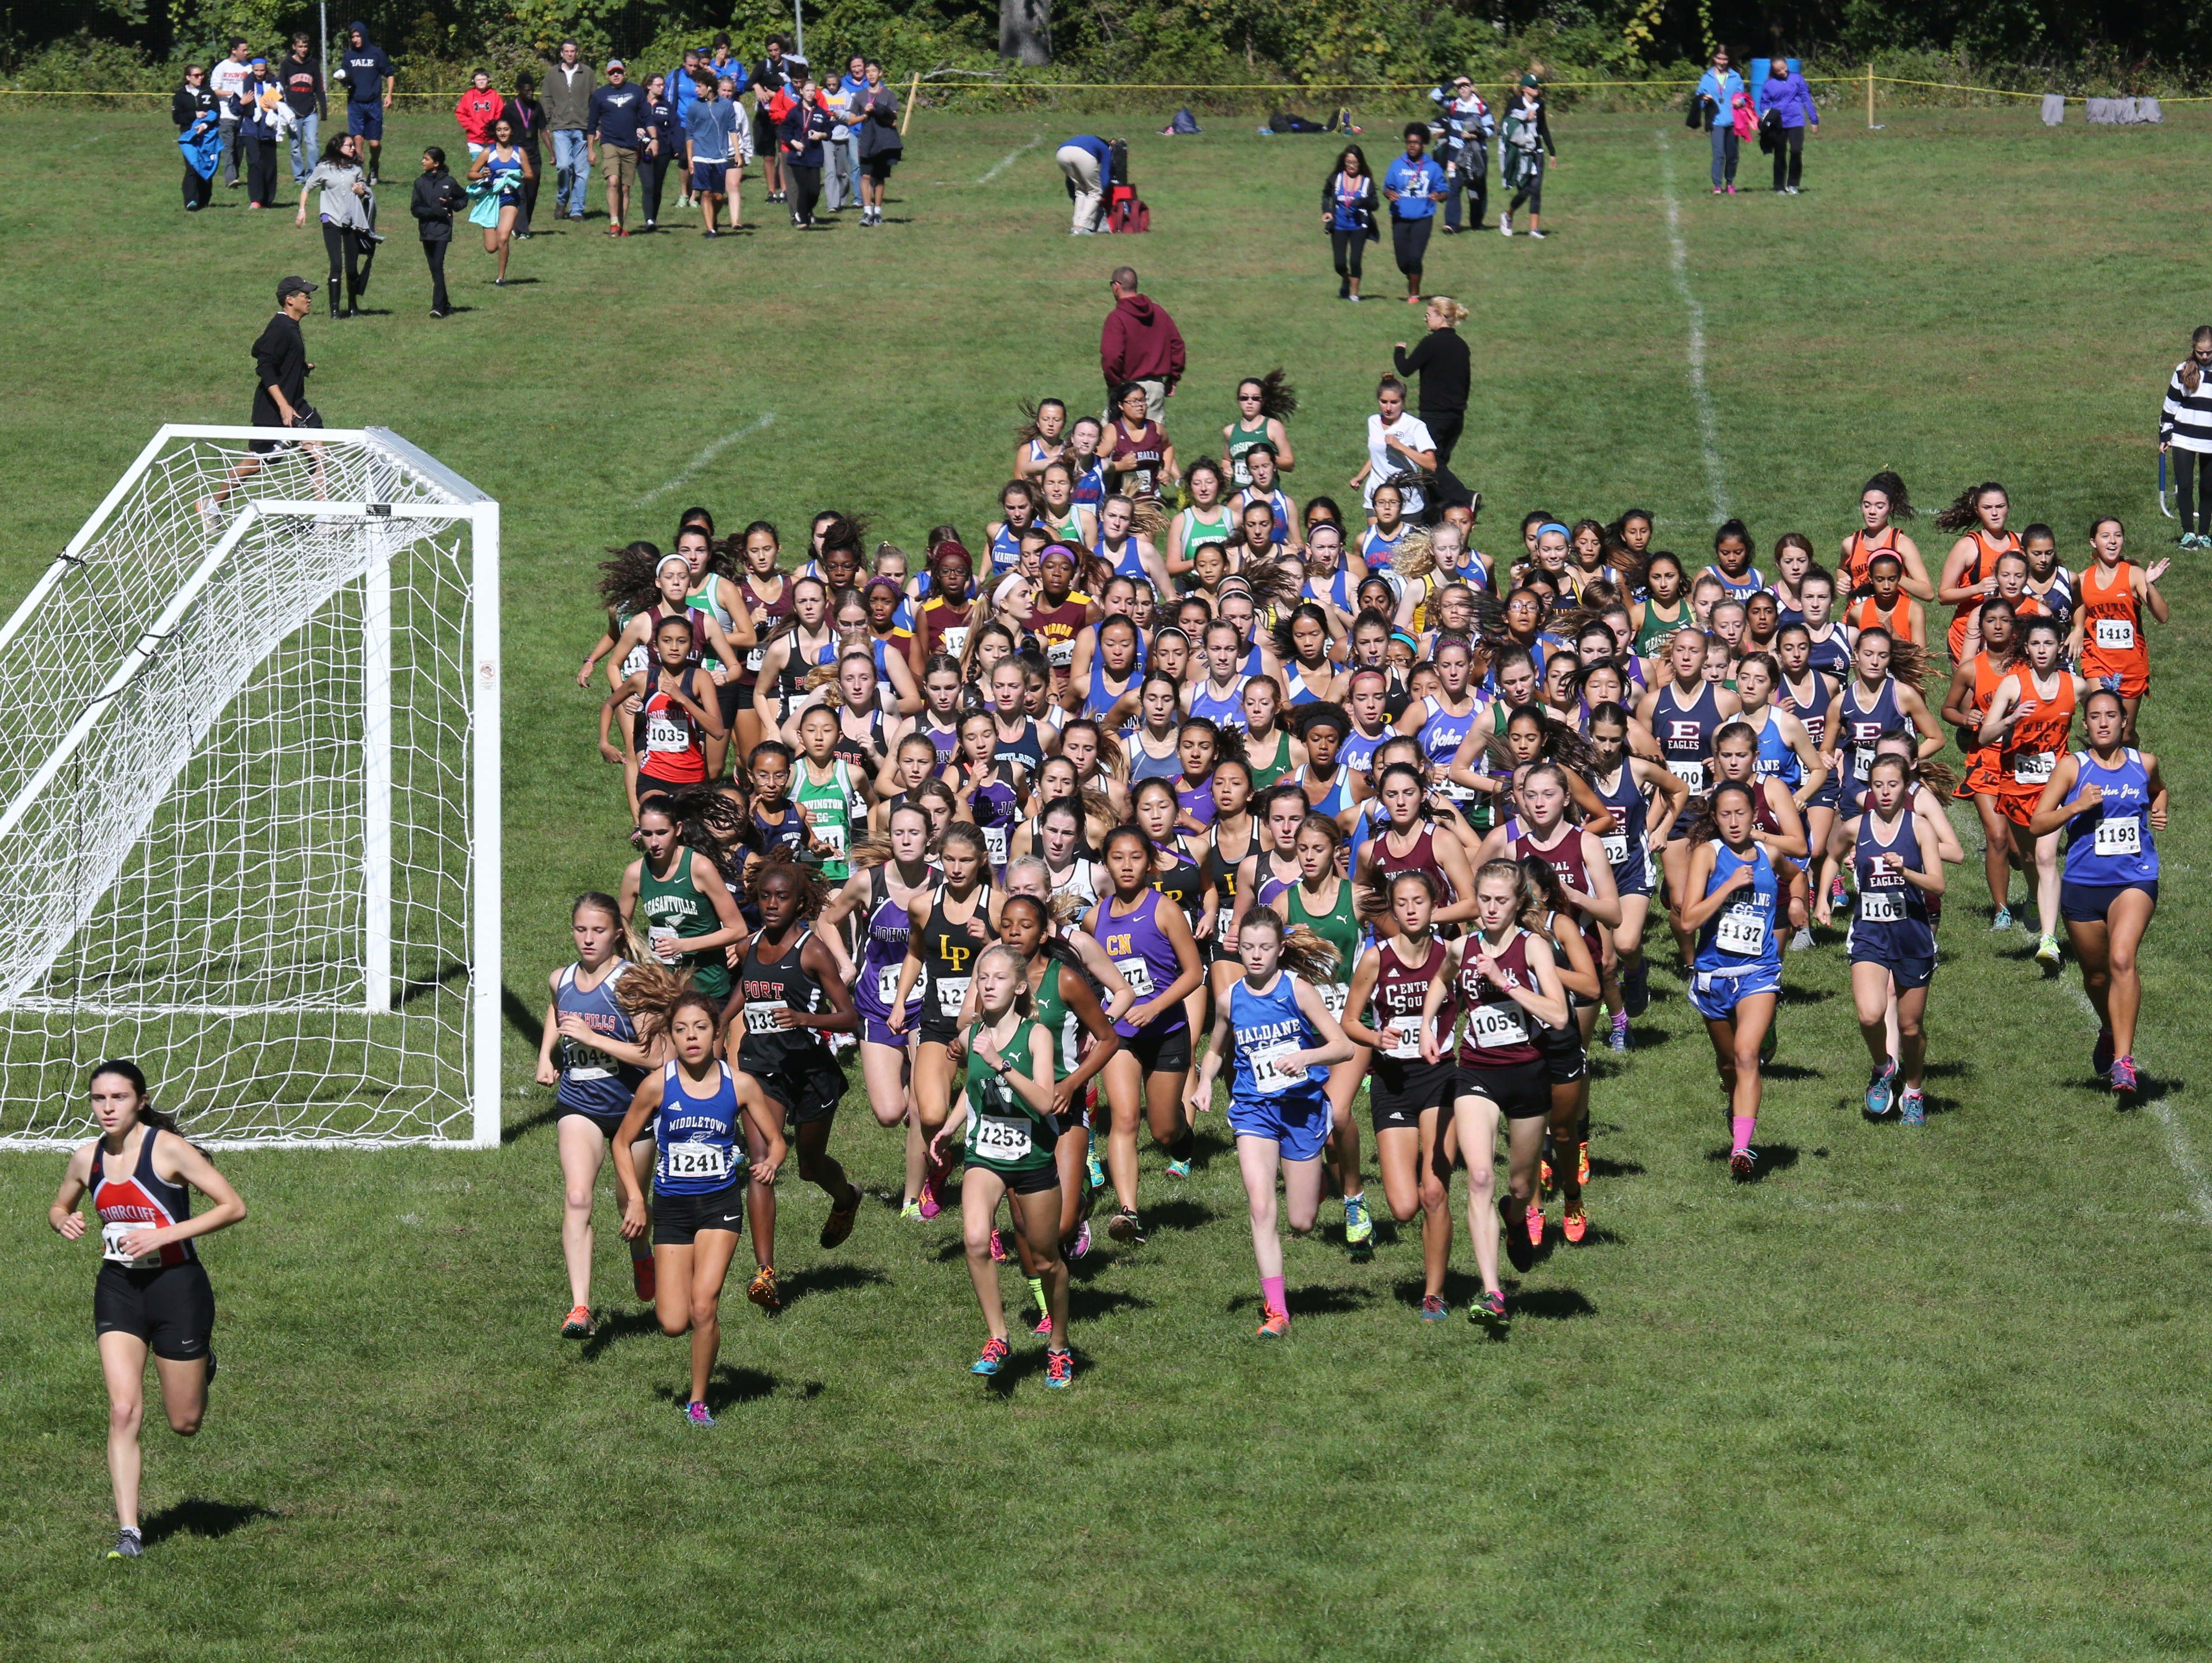 The start of the girls varsity race during the Bobcat Run cross country meet at Byram Hills High School in Armonk, Oct. 10, 2015.